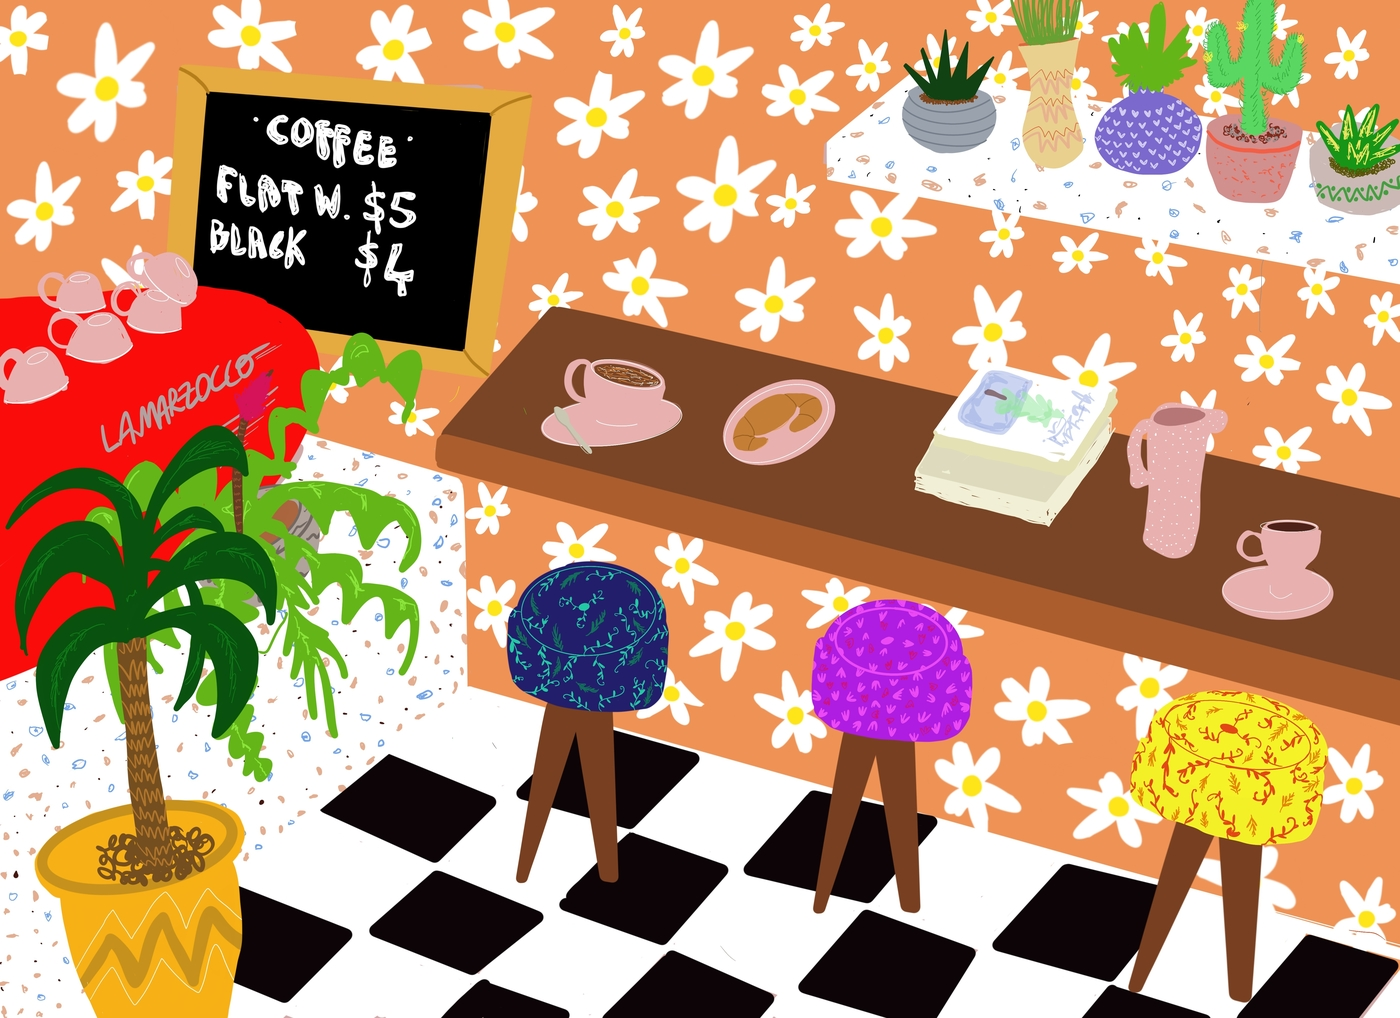 new cafes in Hong Kong 2019 August Drawmajesty Art illustration